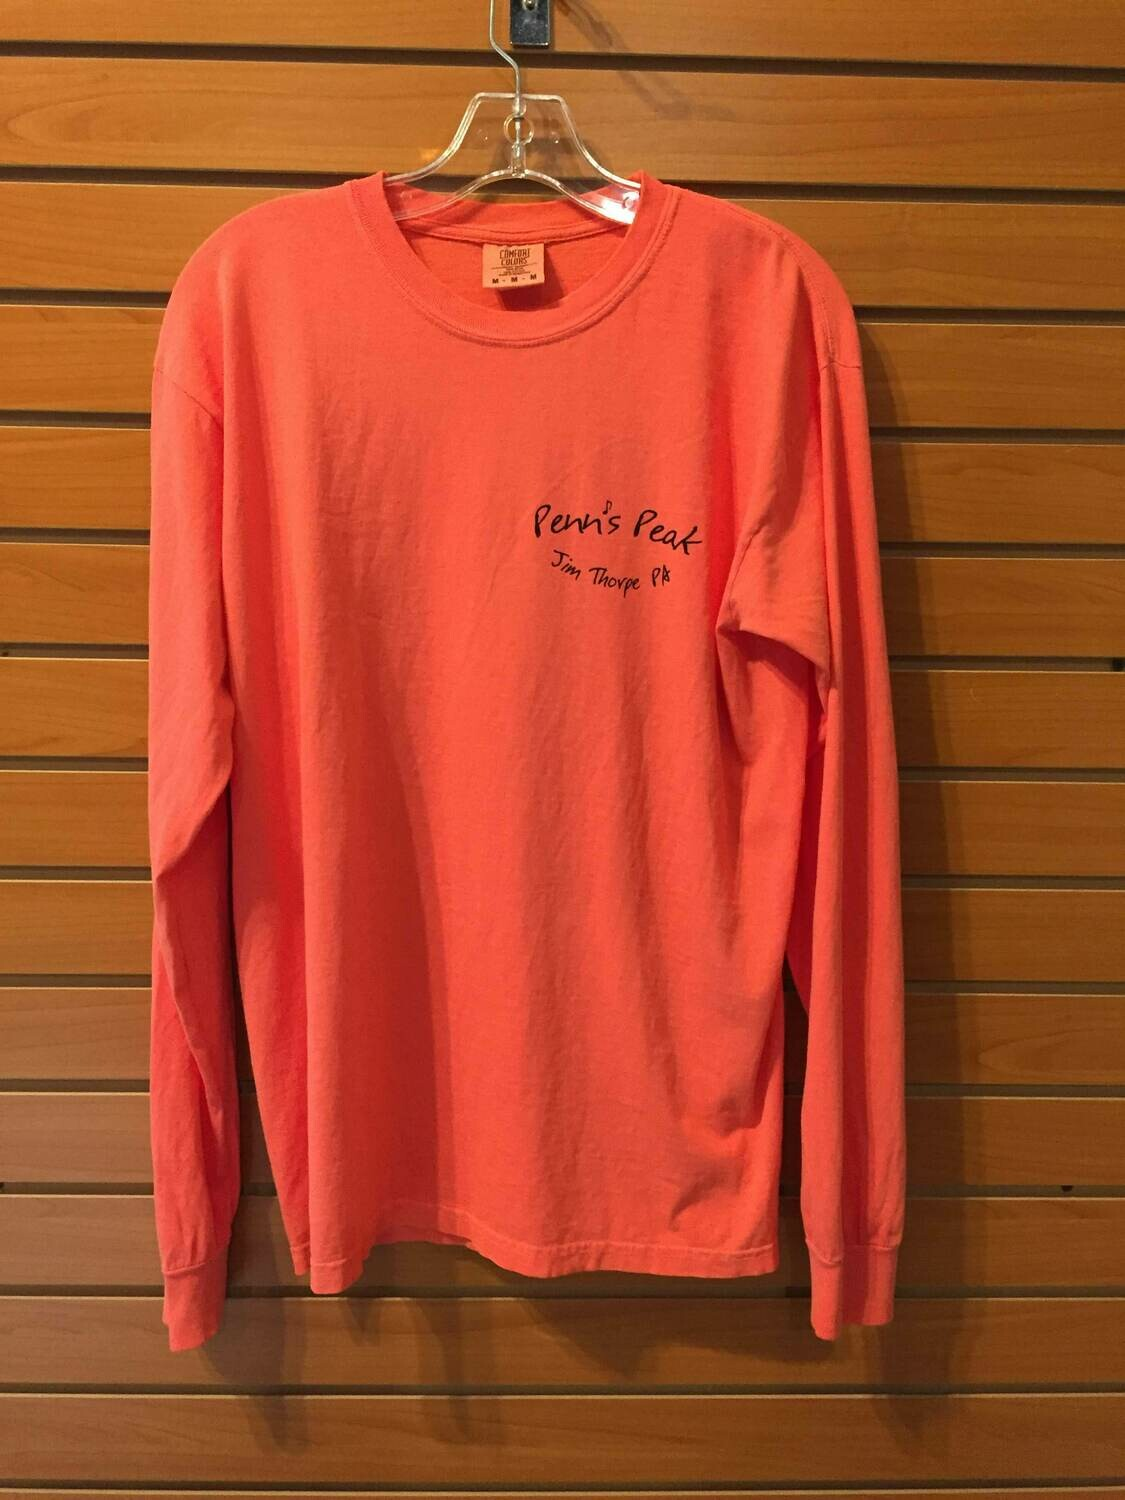 Penn's Peak Long Sleeve T-shirt